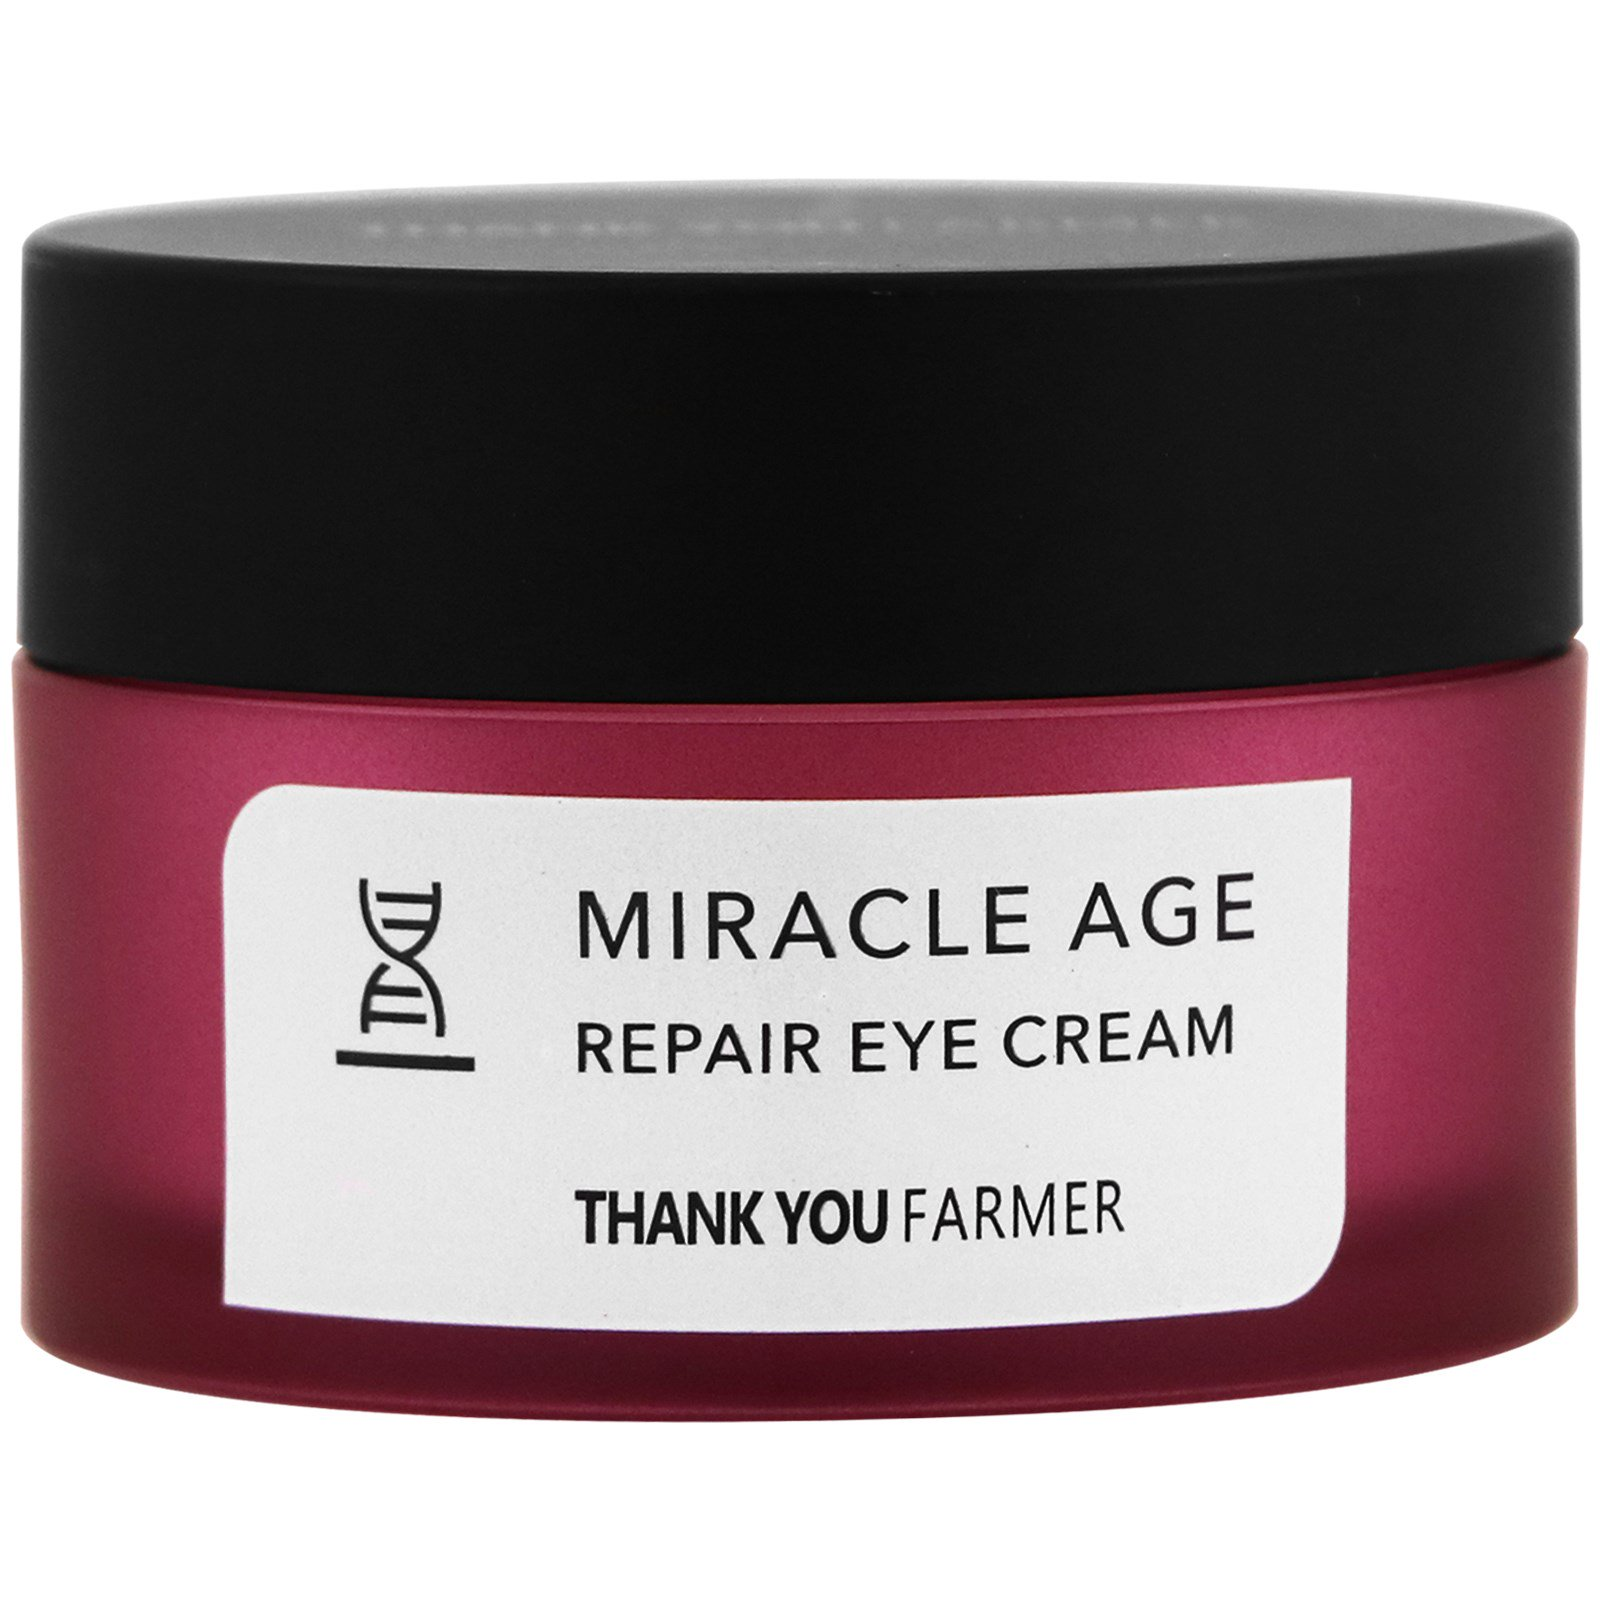 Thank You Farmer, Miracle Age, Repair Serum, 2.11 fl oz (pack of 1) Benefit - Lollibalm Hydrating Tinted Lip Balm -3g/0.1oz